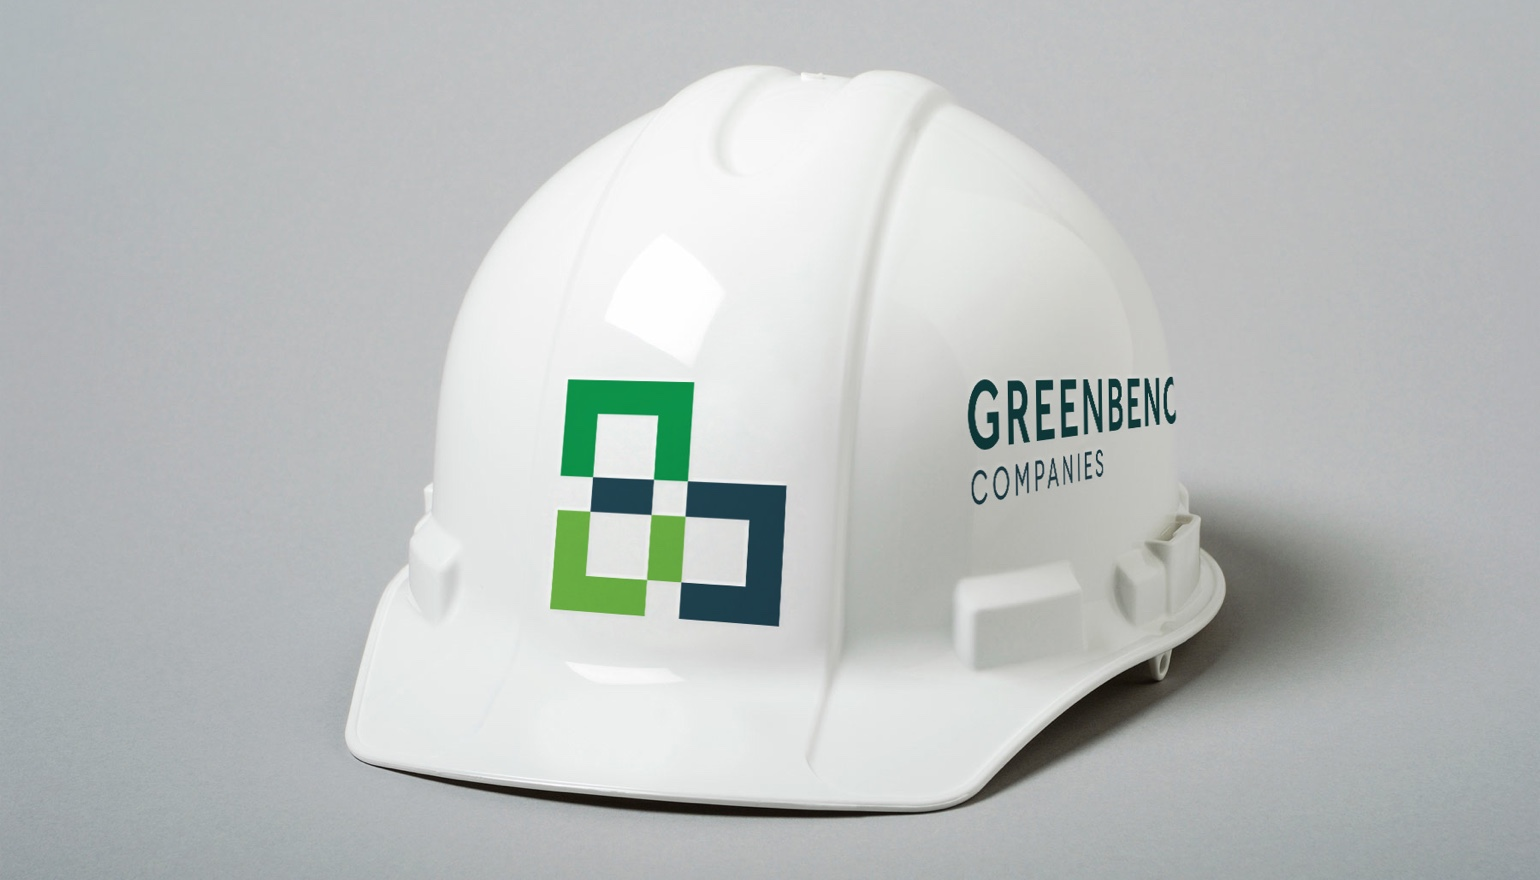 REQ GreenBench Logo Application